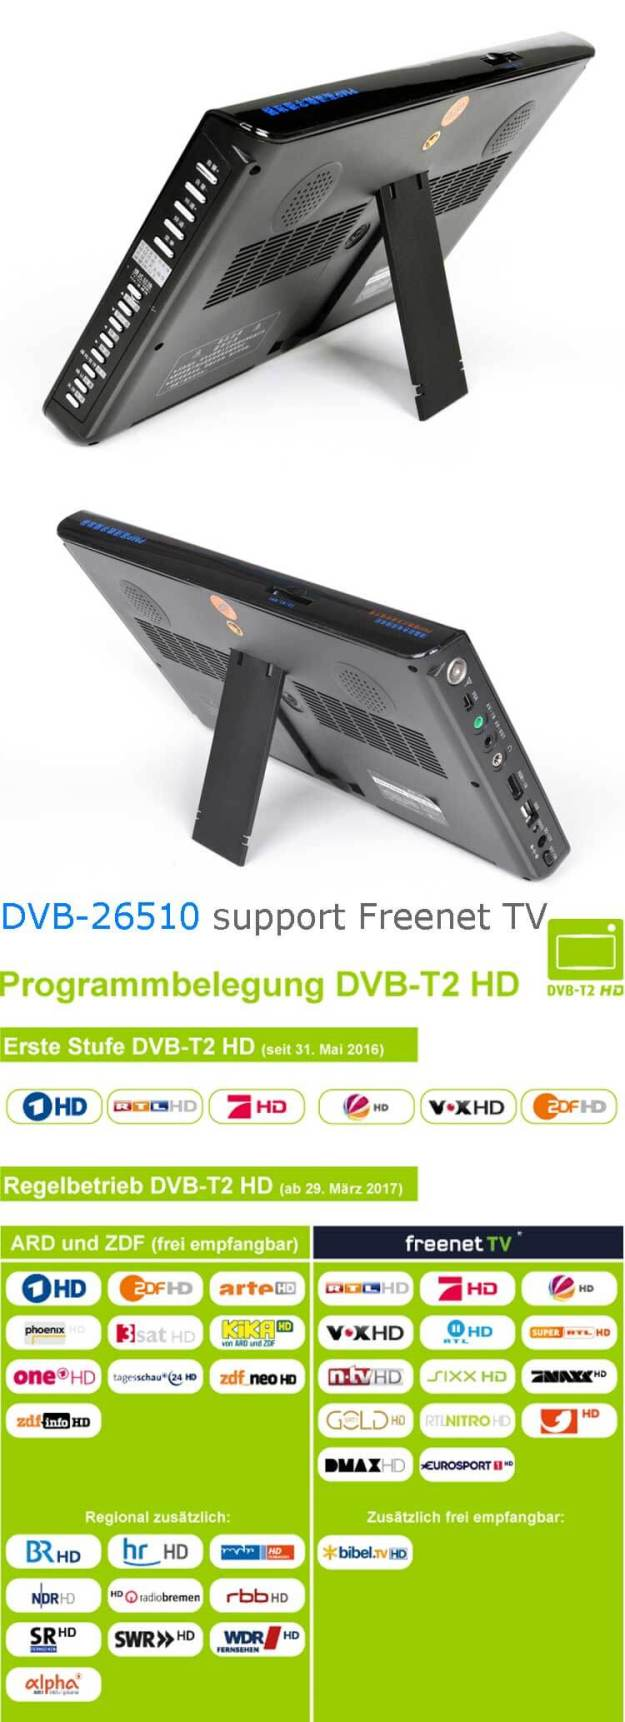 dvb-t26510-support-freenet-tv